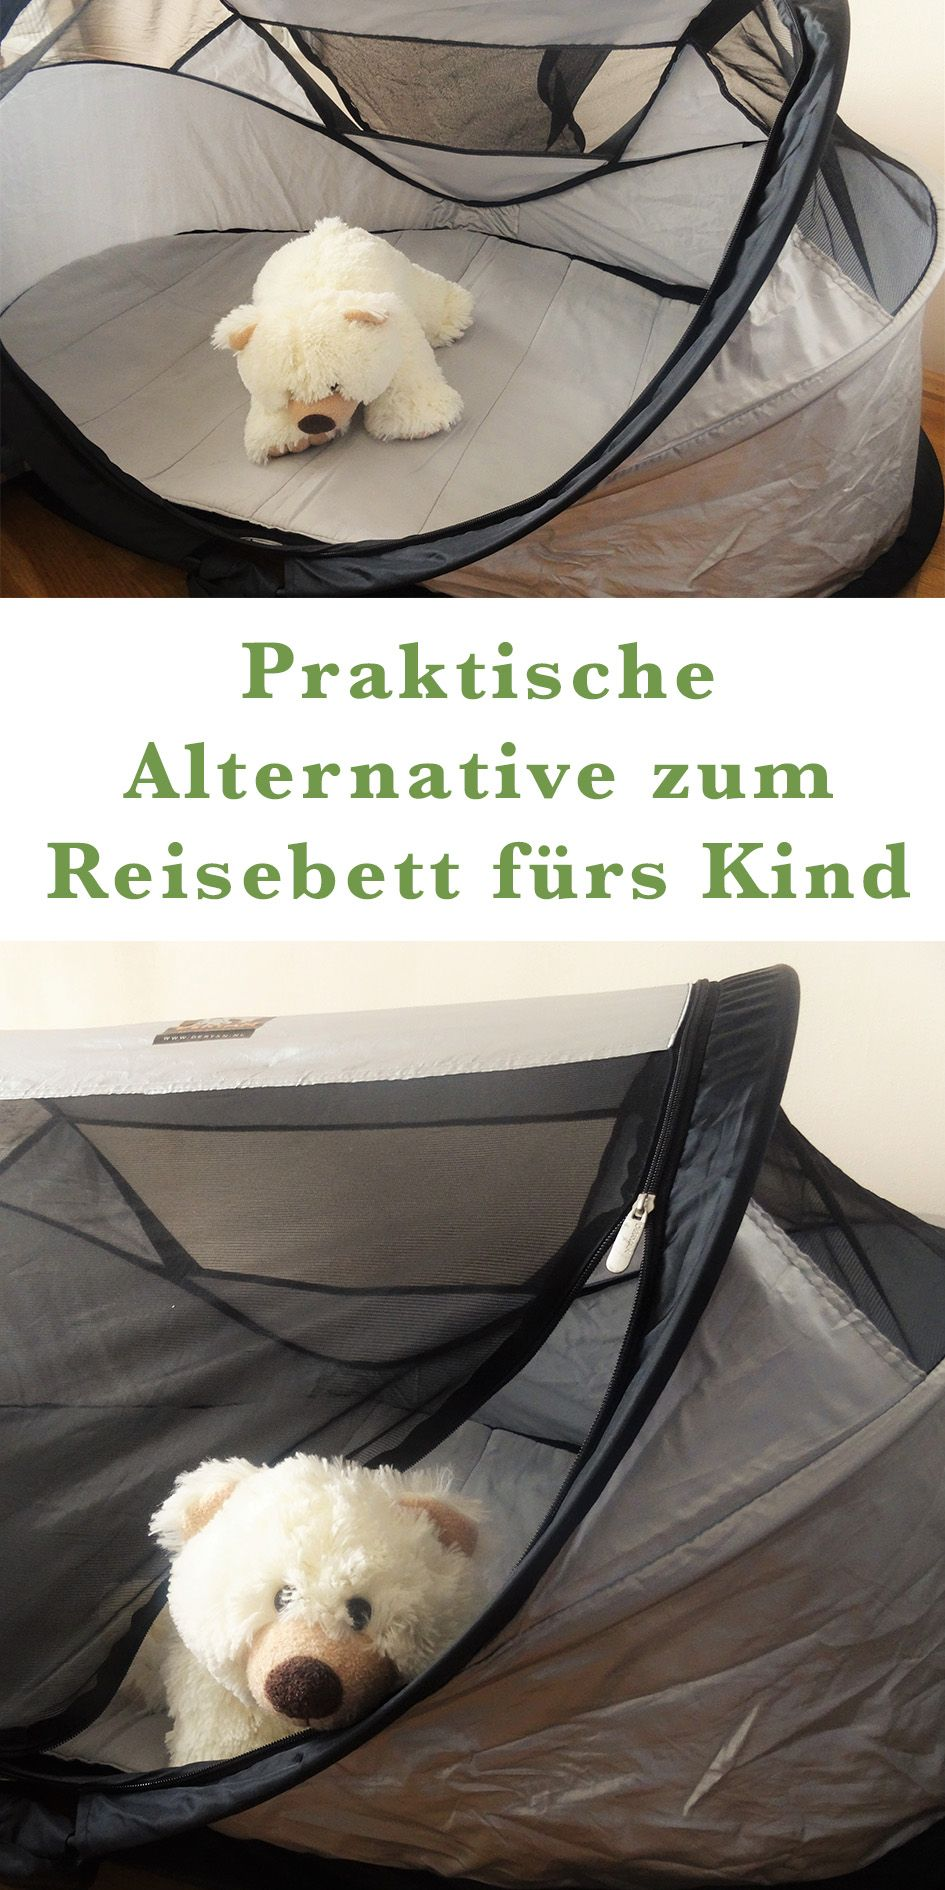 reisezelt praktische alternative zum reisebett f rs kind mami bloggt der blog reisen mit. Black Bedroom Furniture Sets. Home Design Ideas